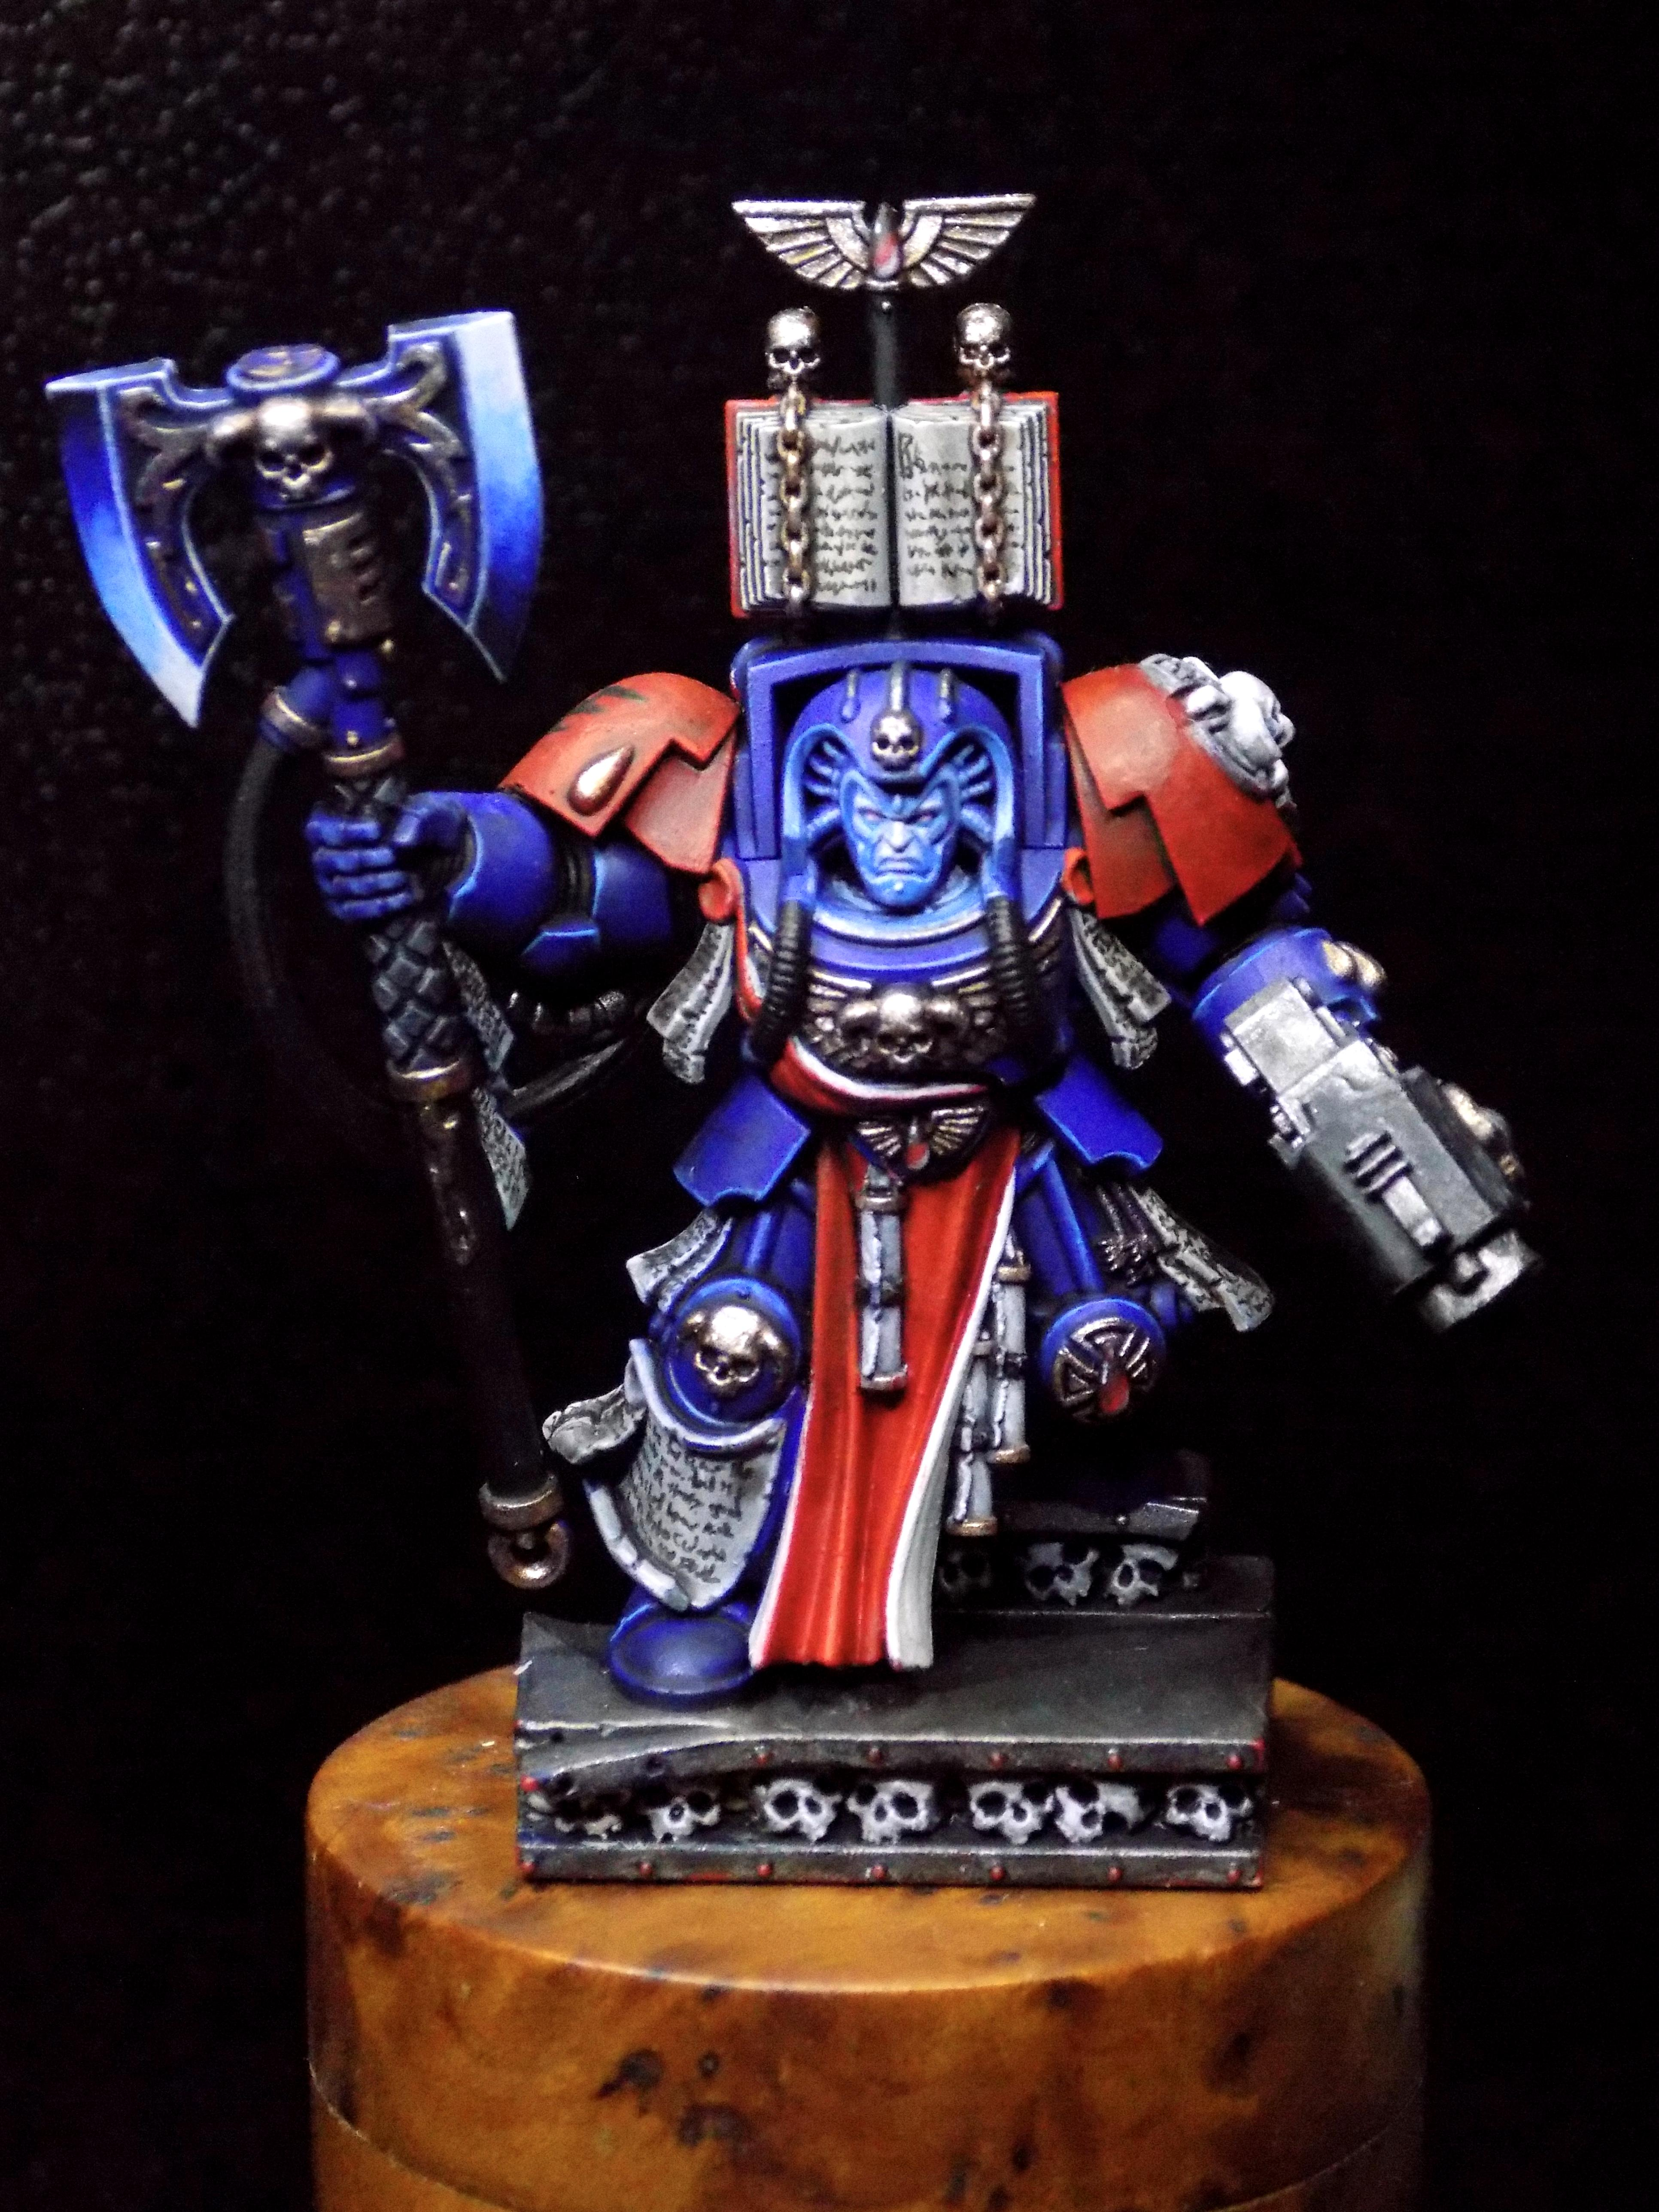 Blood Angels, Commission, Gem, Object Source Lighting, Space Hulk, Space Marines, Terminator Armor